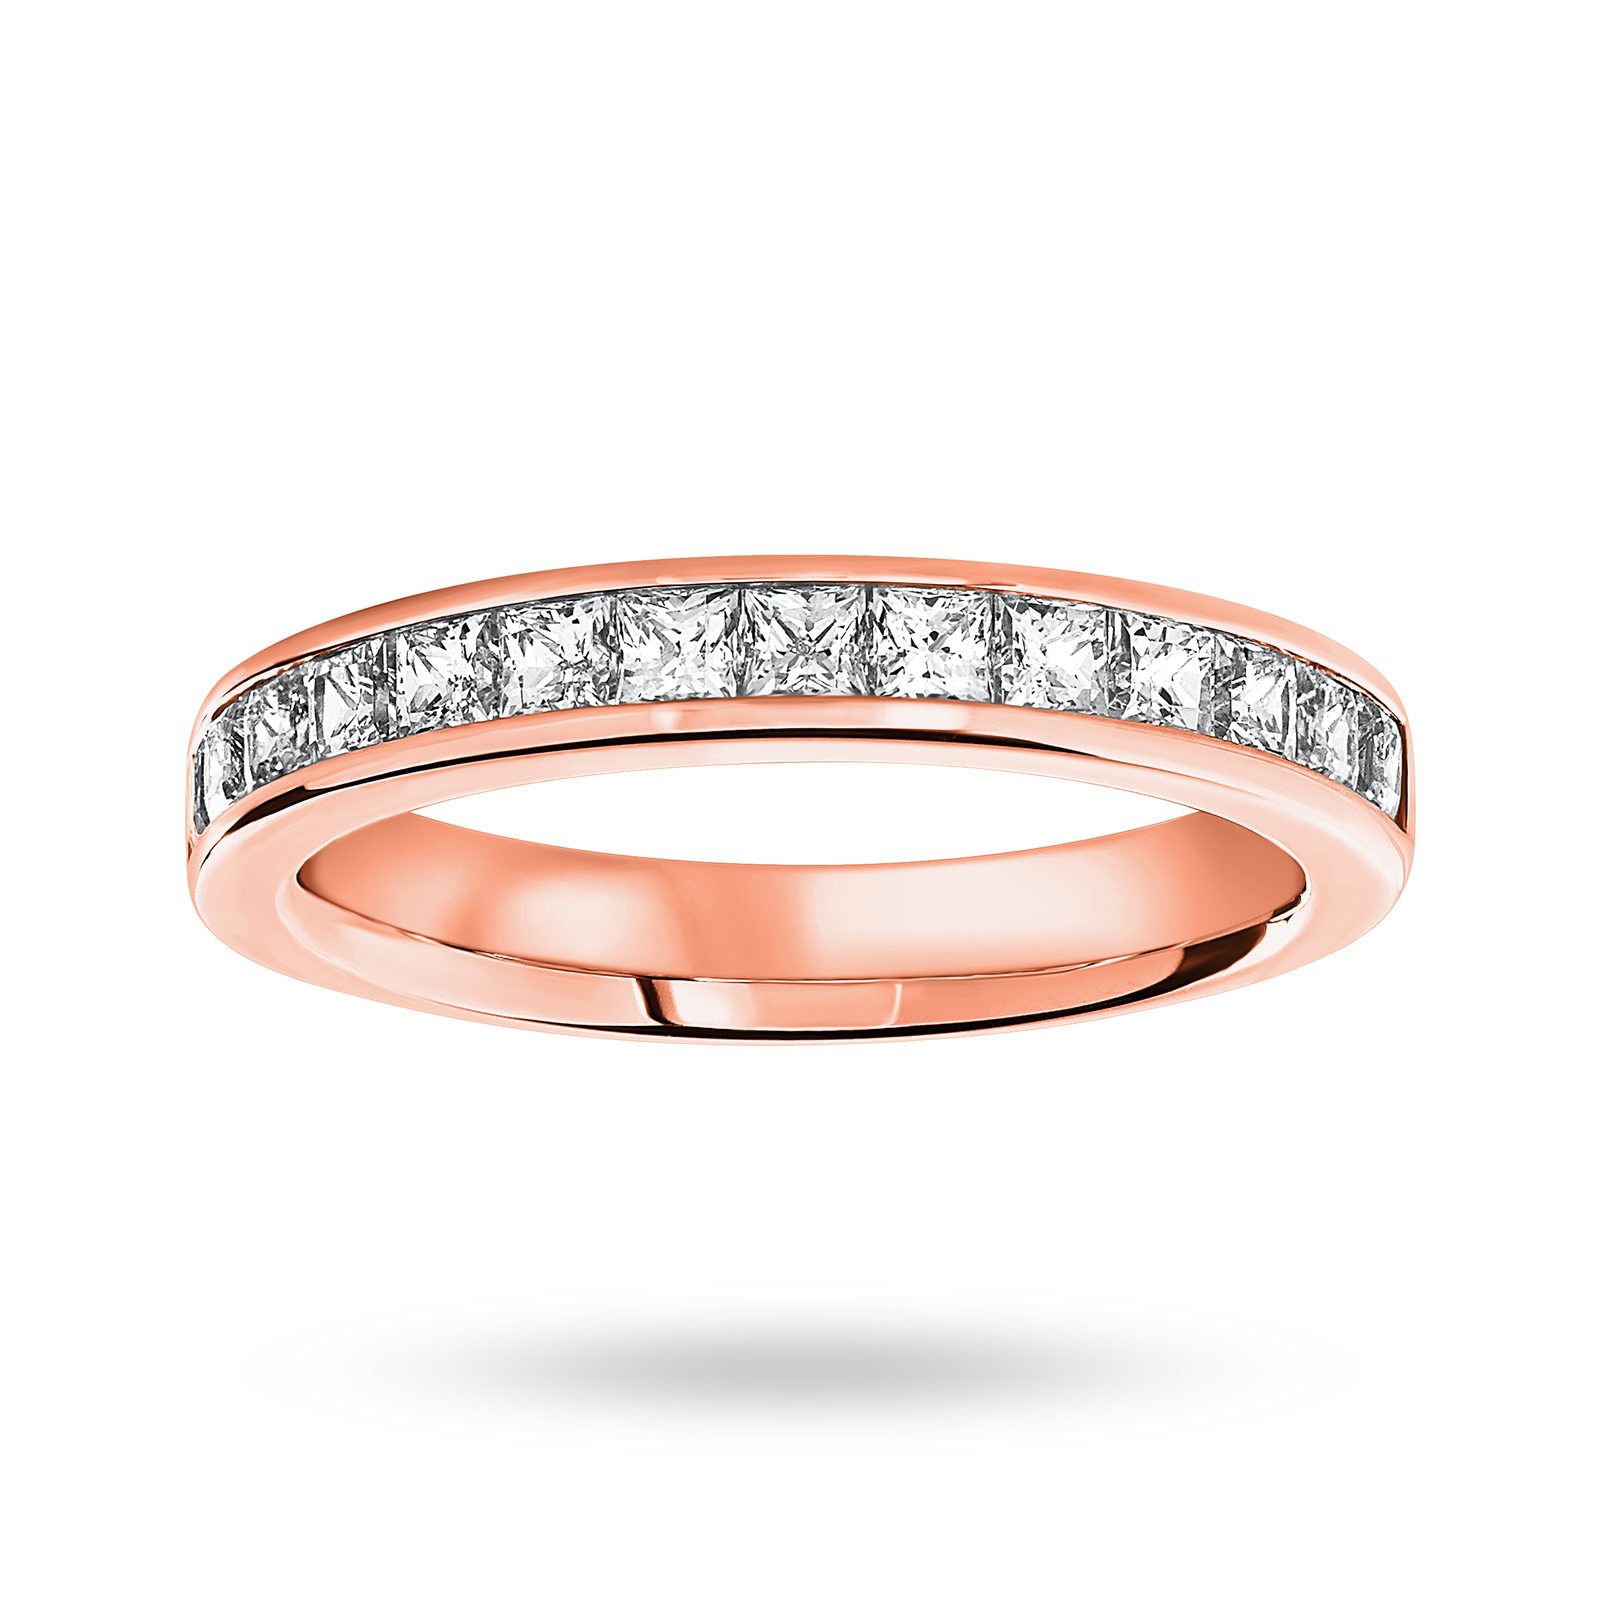 18 Carat Rose Gold 1.00 Carat Princess Cut Half Eternity Ring